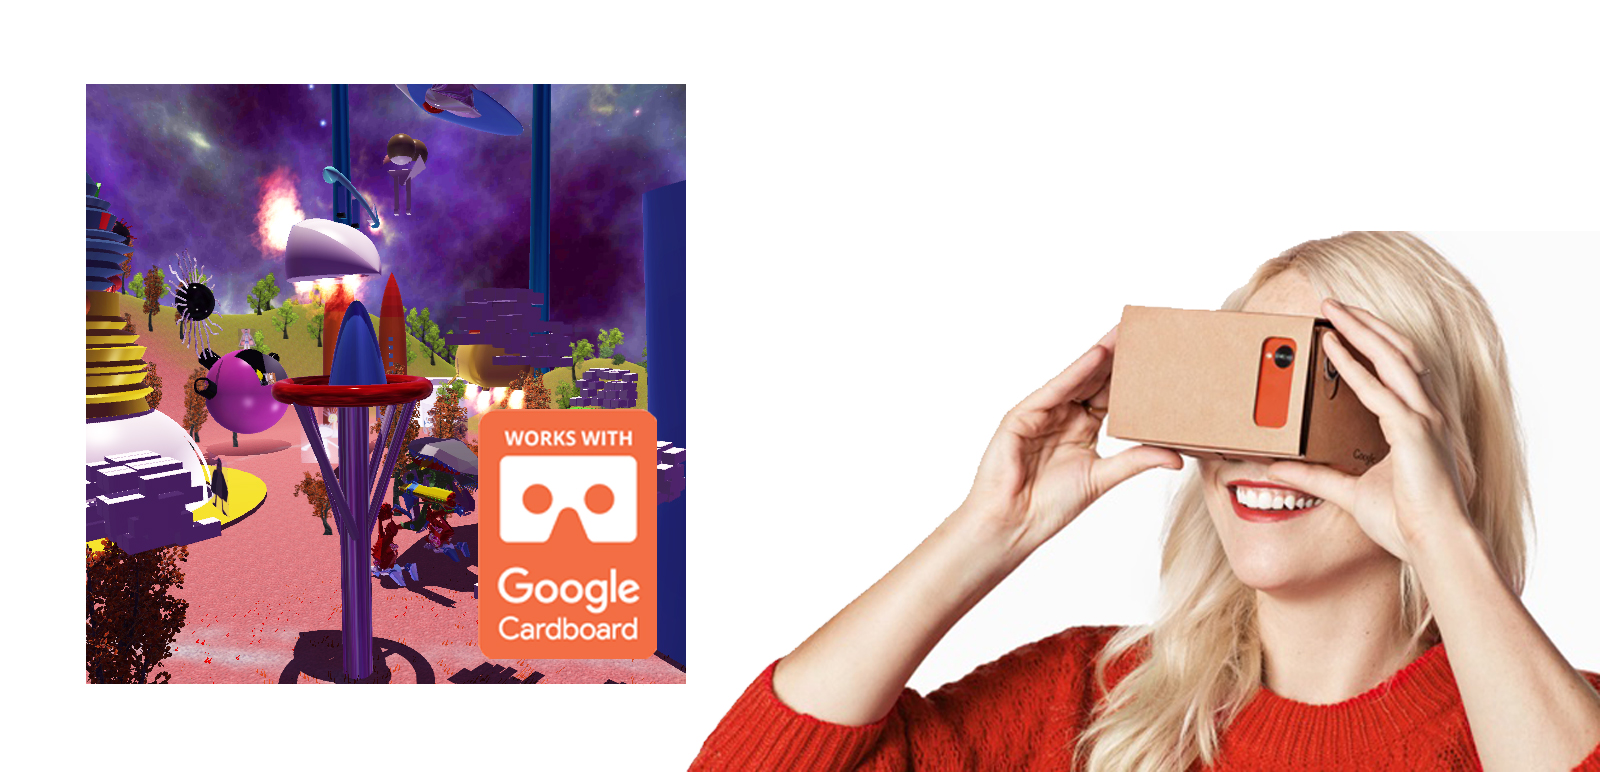 VR Imaginary Offices Tour for Google Cardboard 1